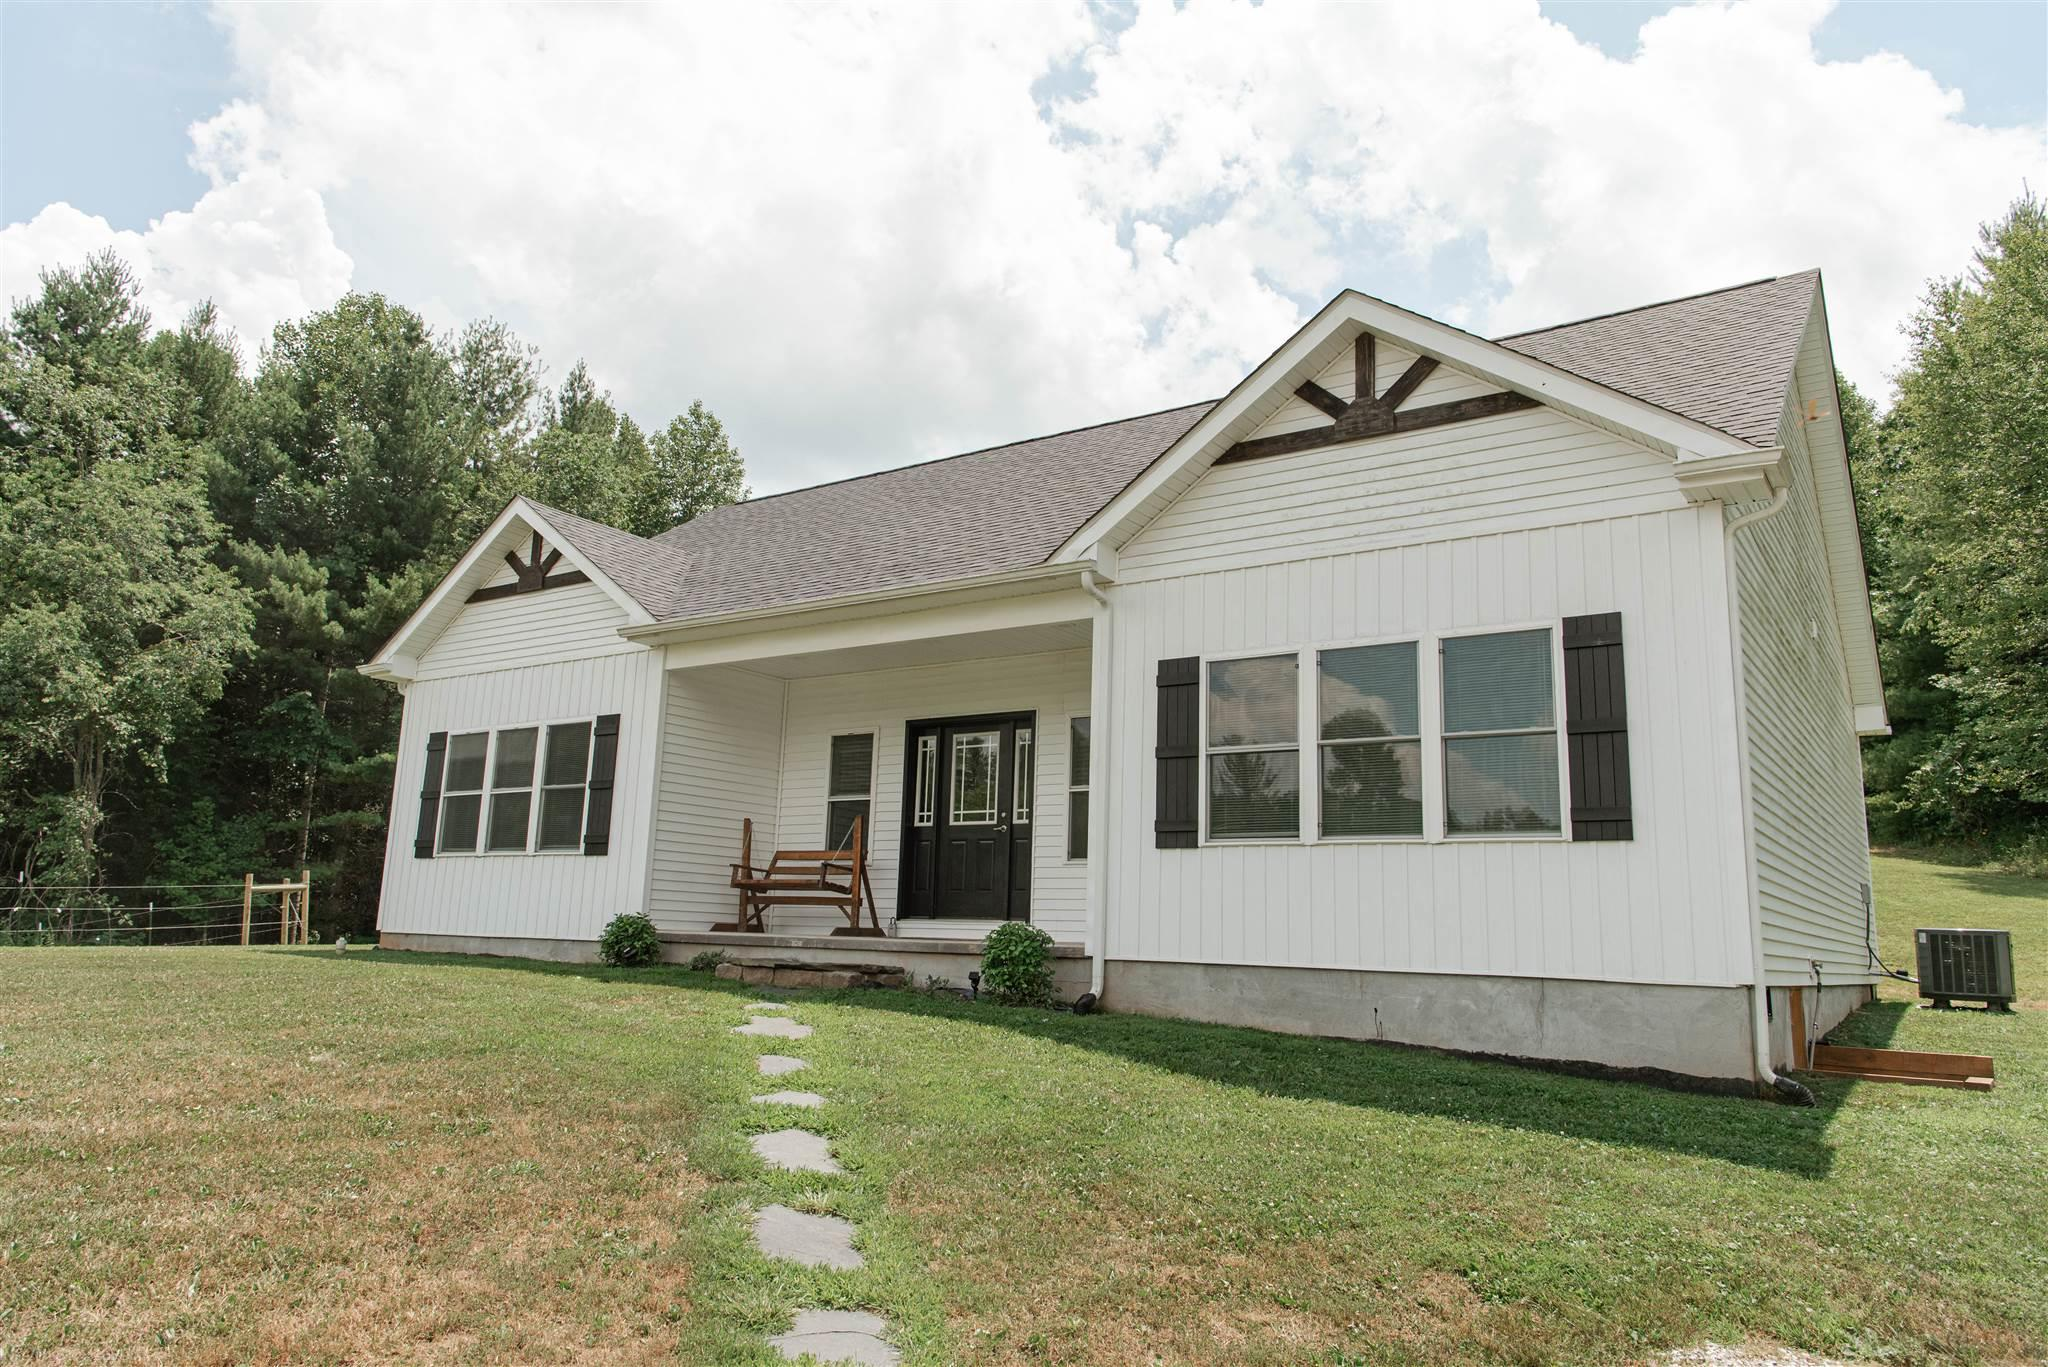 "Don't miss this beautiful ""like new"" 3 bedroom 2 bath 1-level home sitting on nearly 5 acres in Floyd County. The home has gorgeous finishing from high ceilings, granite counters, sliding barn doors, stunning master bath, high end appliances, and so much more!!  Great location for horse lovers, with fenced in acreage with a creek and 3 stall horse barn.  Brand new detached garage/shed included."